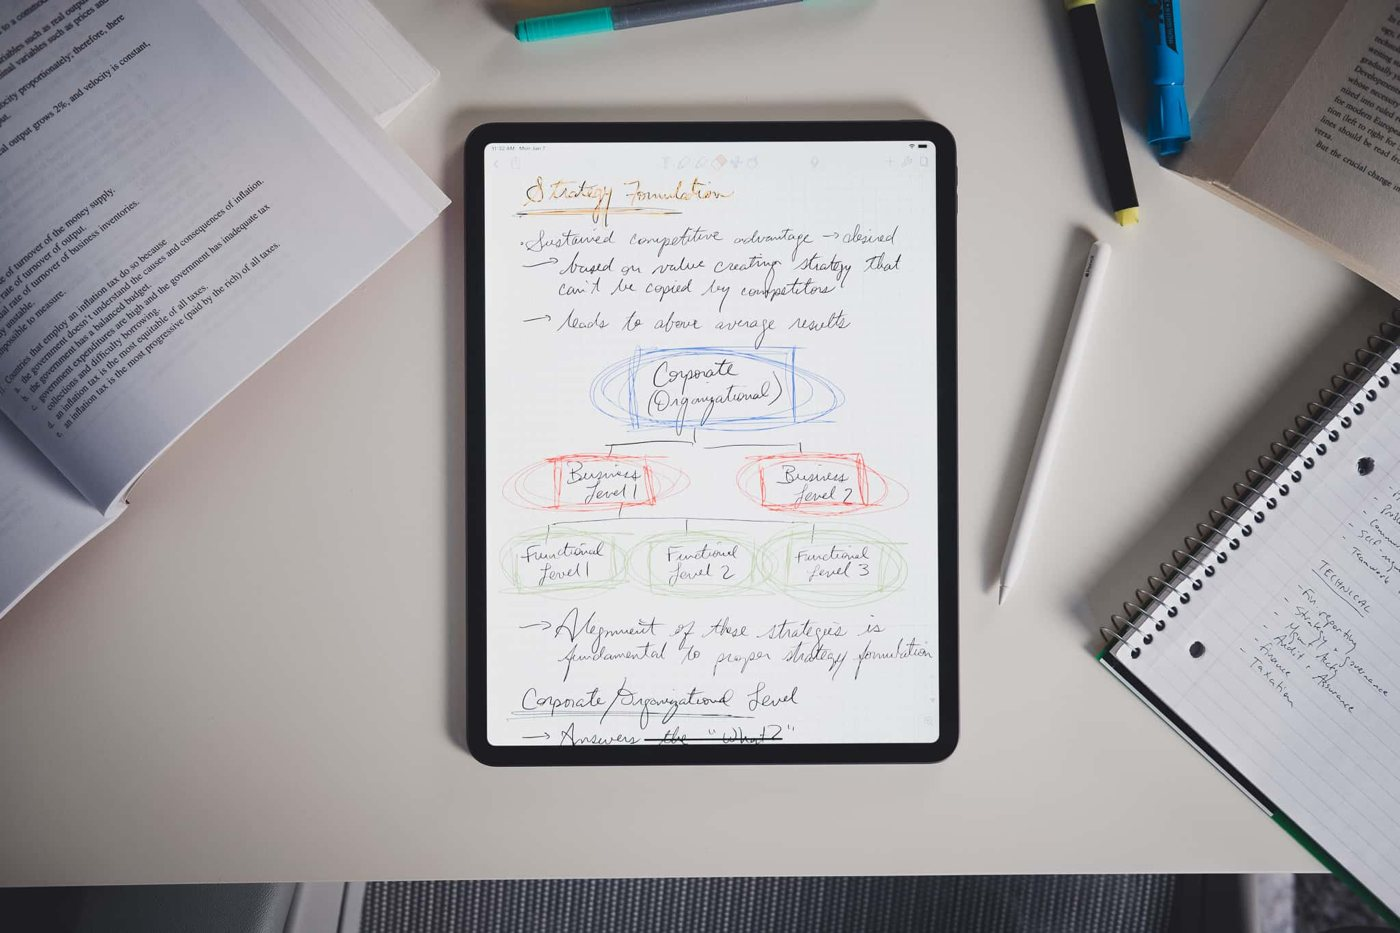 The Best App for Taking Handwritten Notes on an iPad